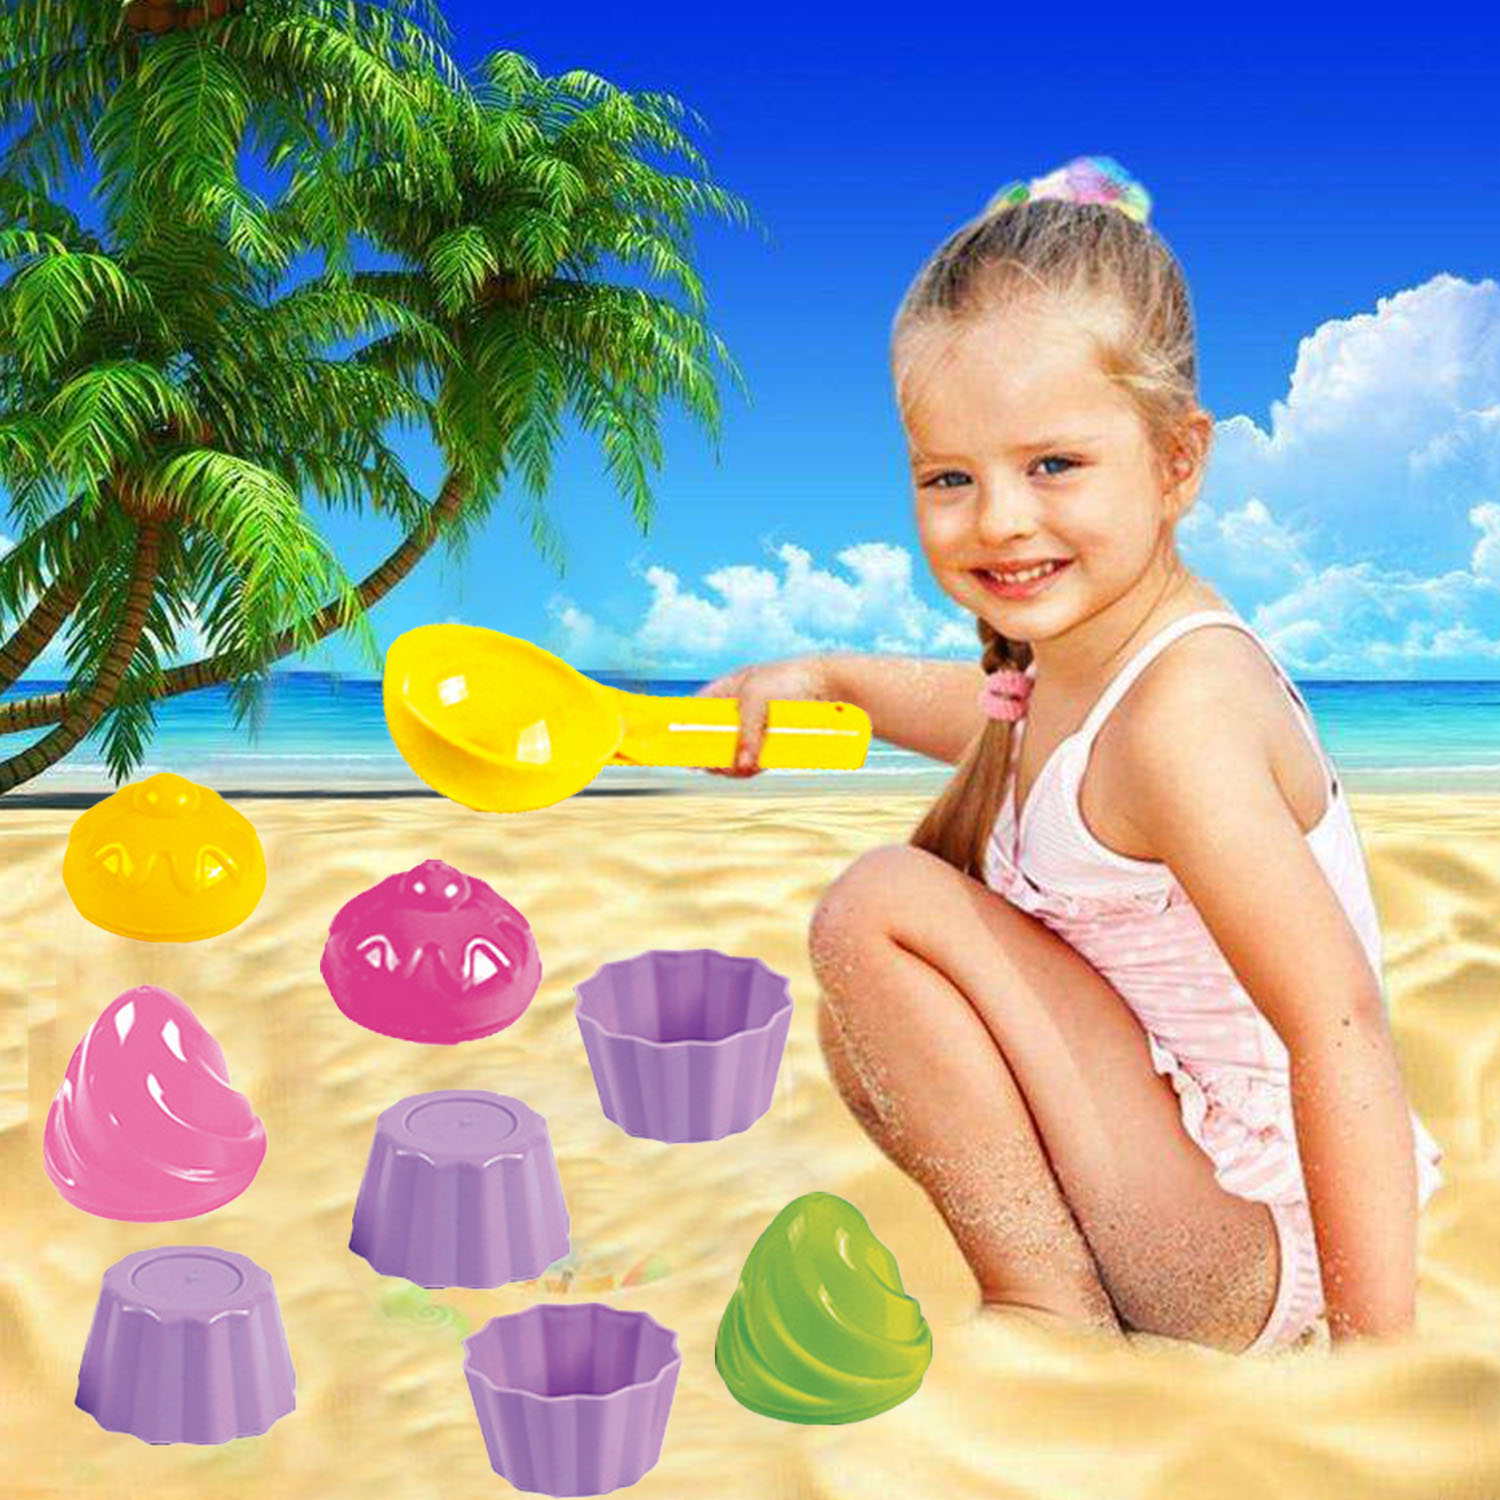 9PCS Funny Kawaii Ice Cream Cake Mold Summer Beach Sand Gaming Playing Toys Set For Kids Children Boys Girls Educational Gifts